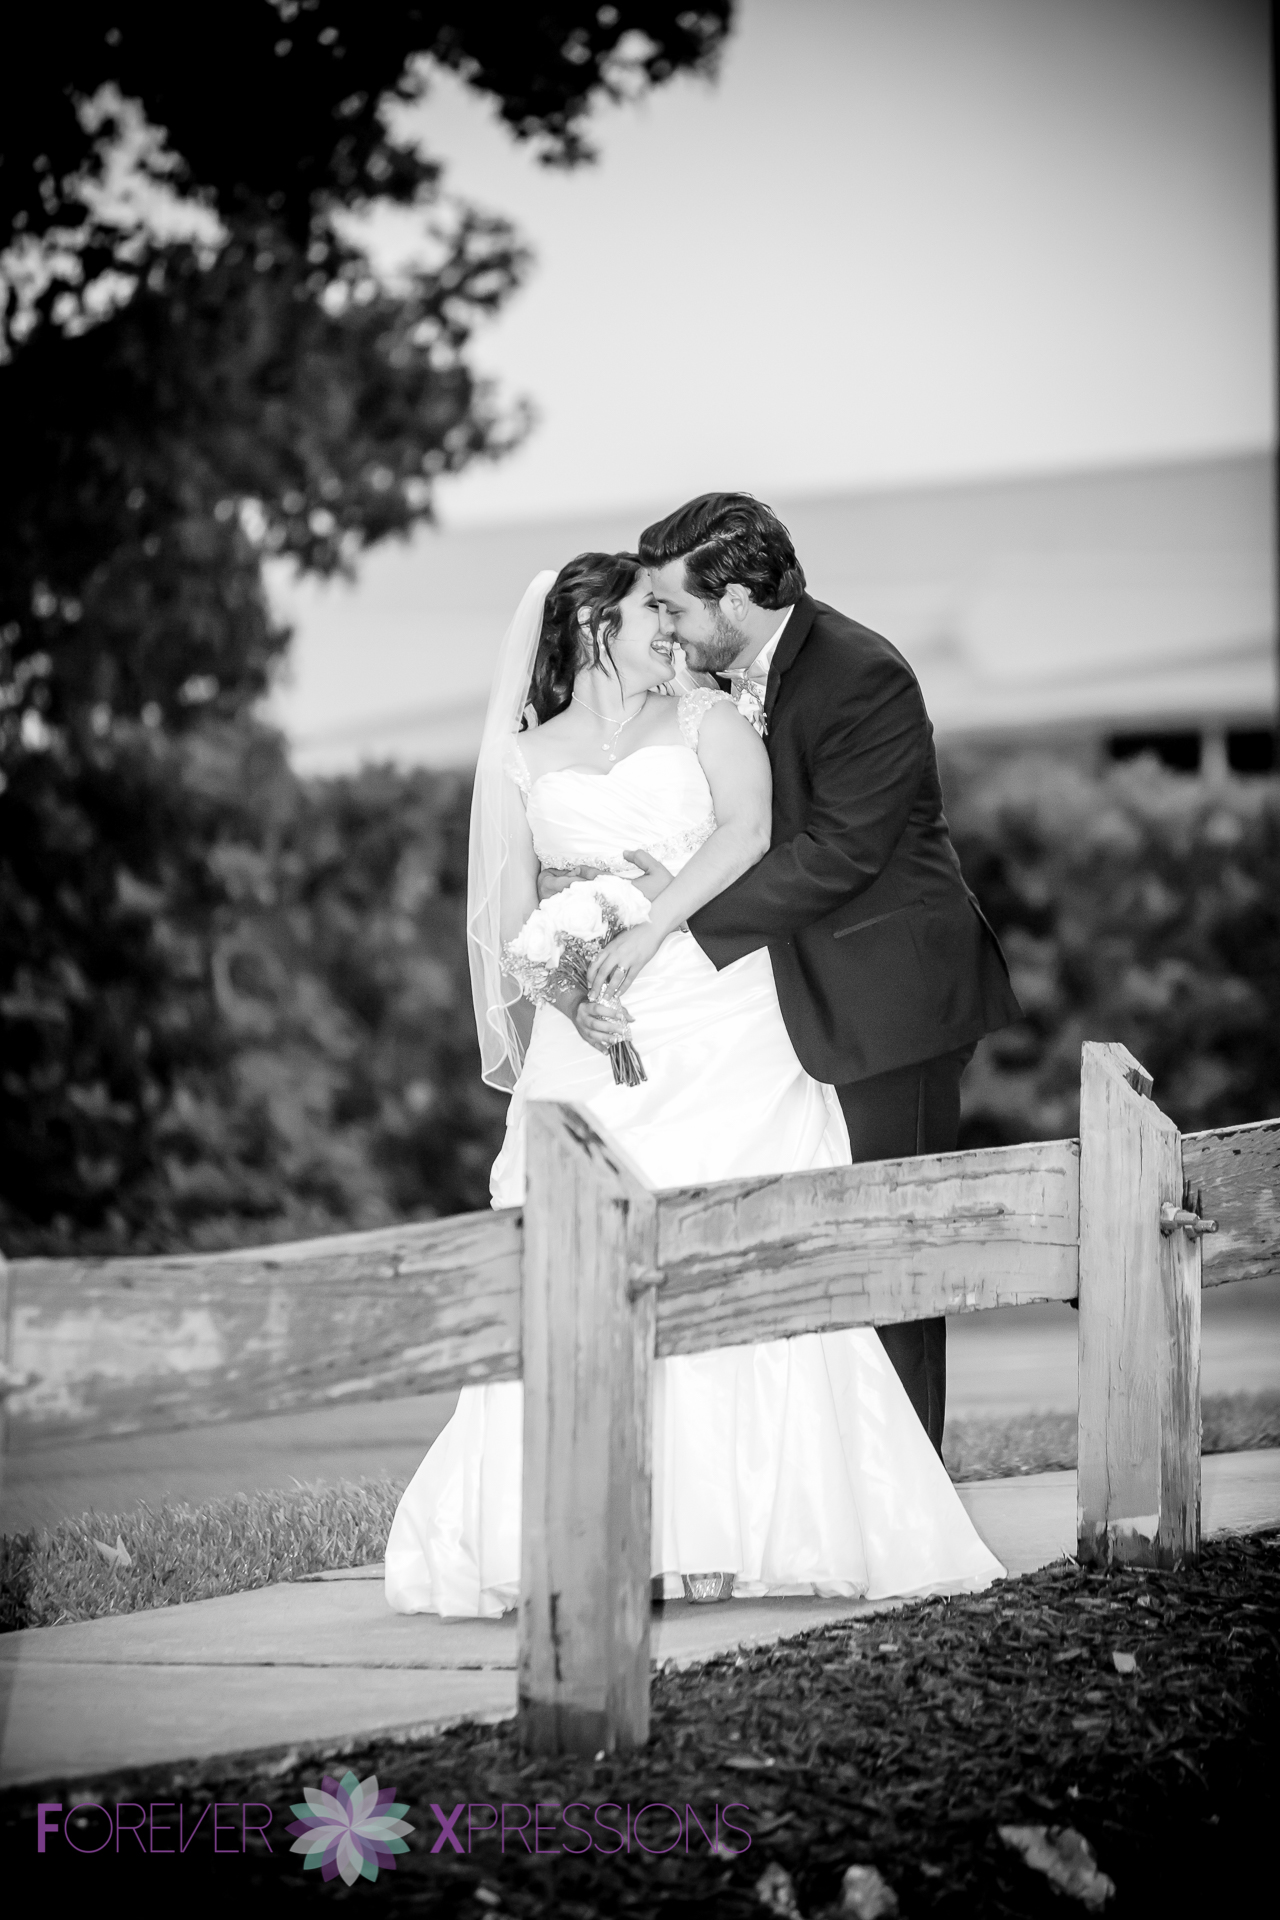 Forever_Xpressions_Wedding_Photography_Monteverde_Bella_Collina-0530